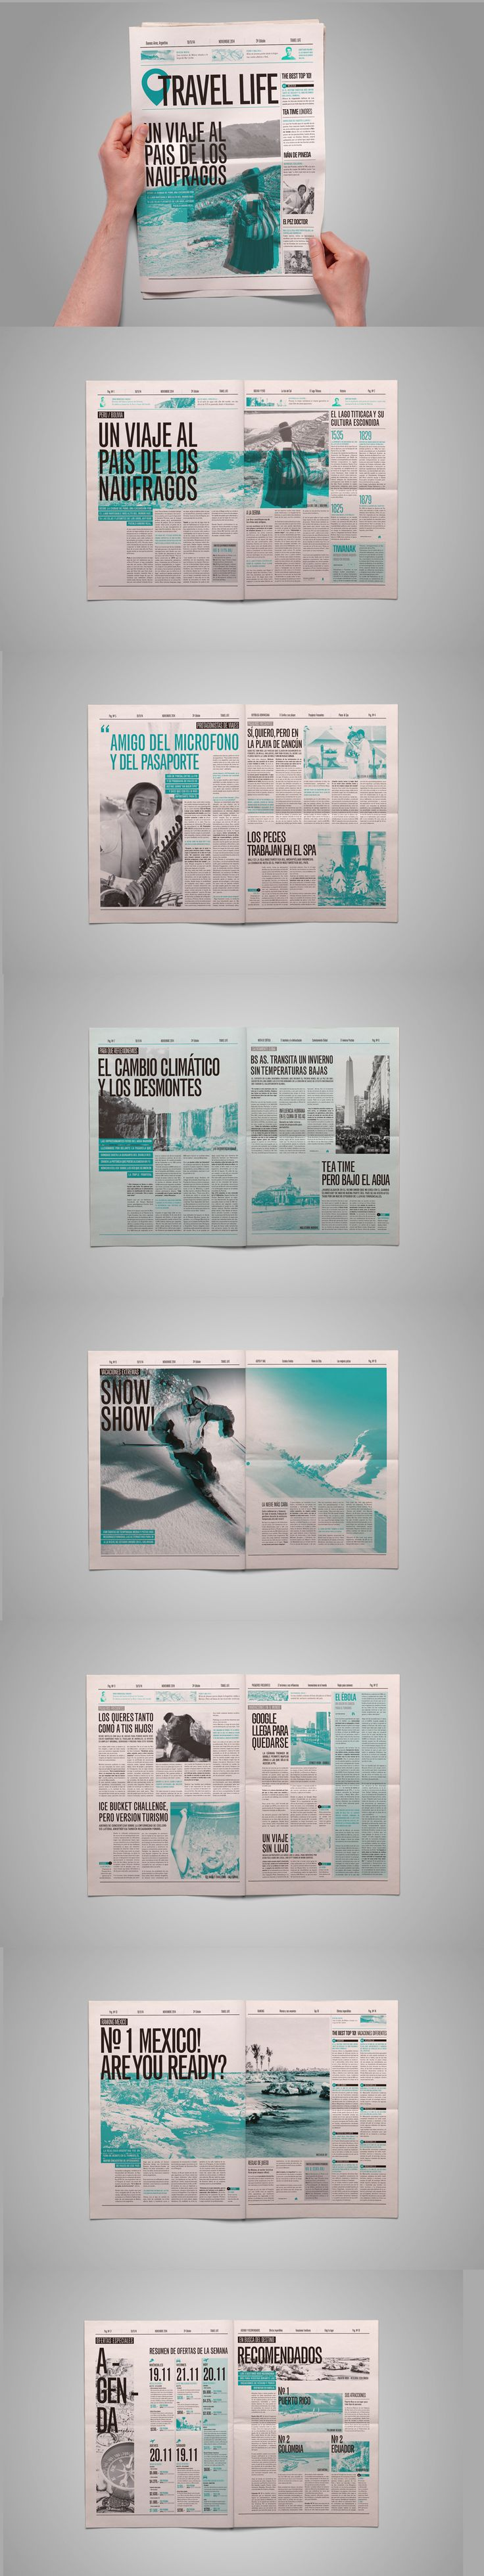 Diseño Editorial - Diario on Behance                                                                                                                                                                                 Más